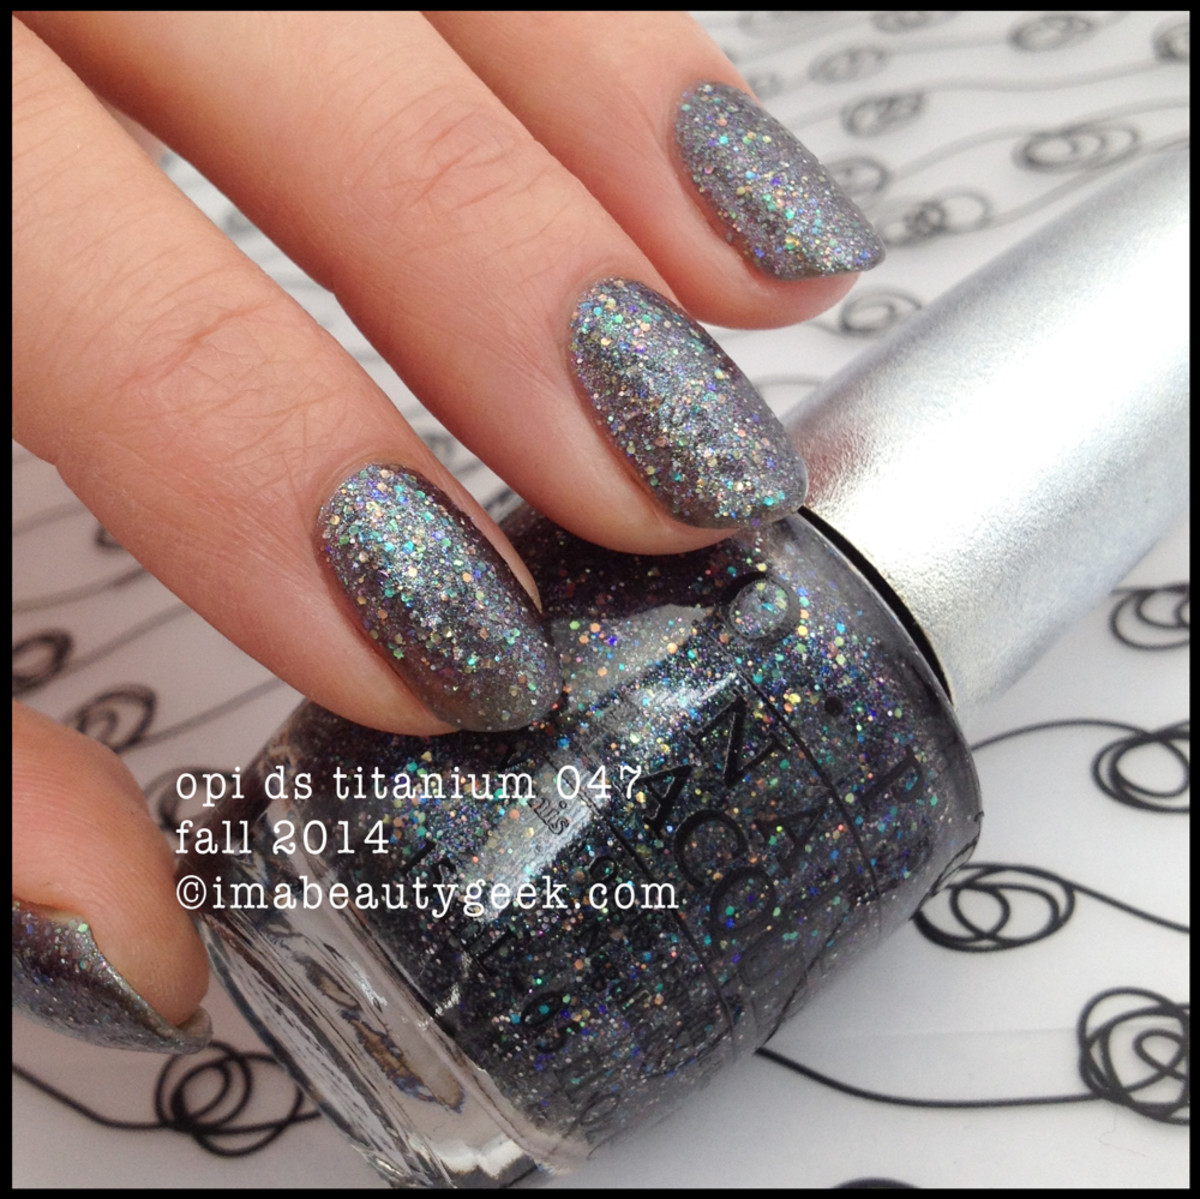 OPI DS Titanium 047 Fall 2014 Beautygeeks